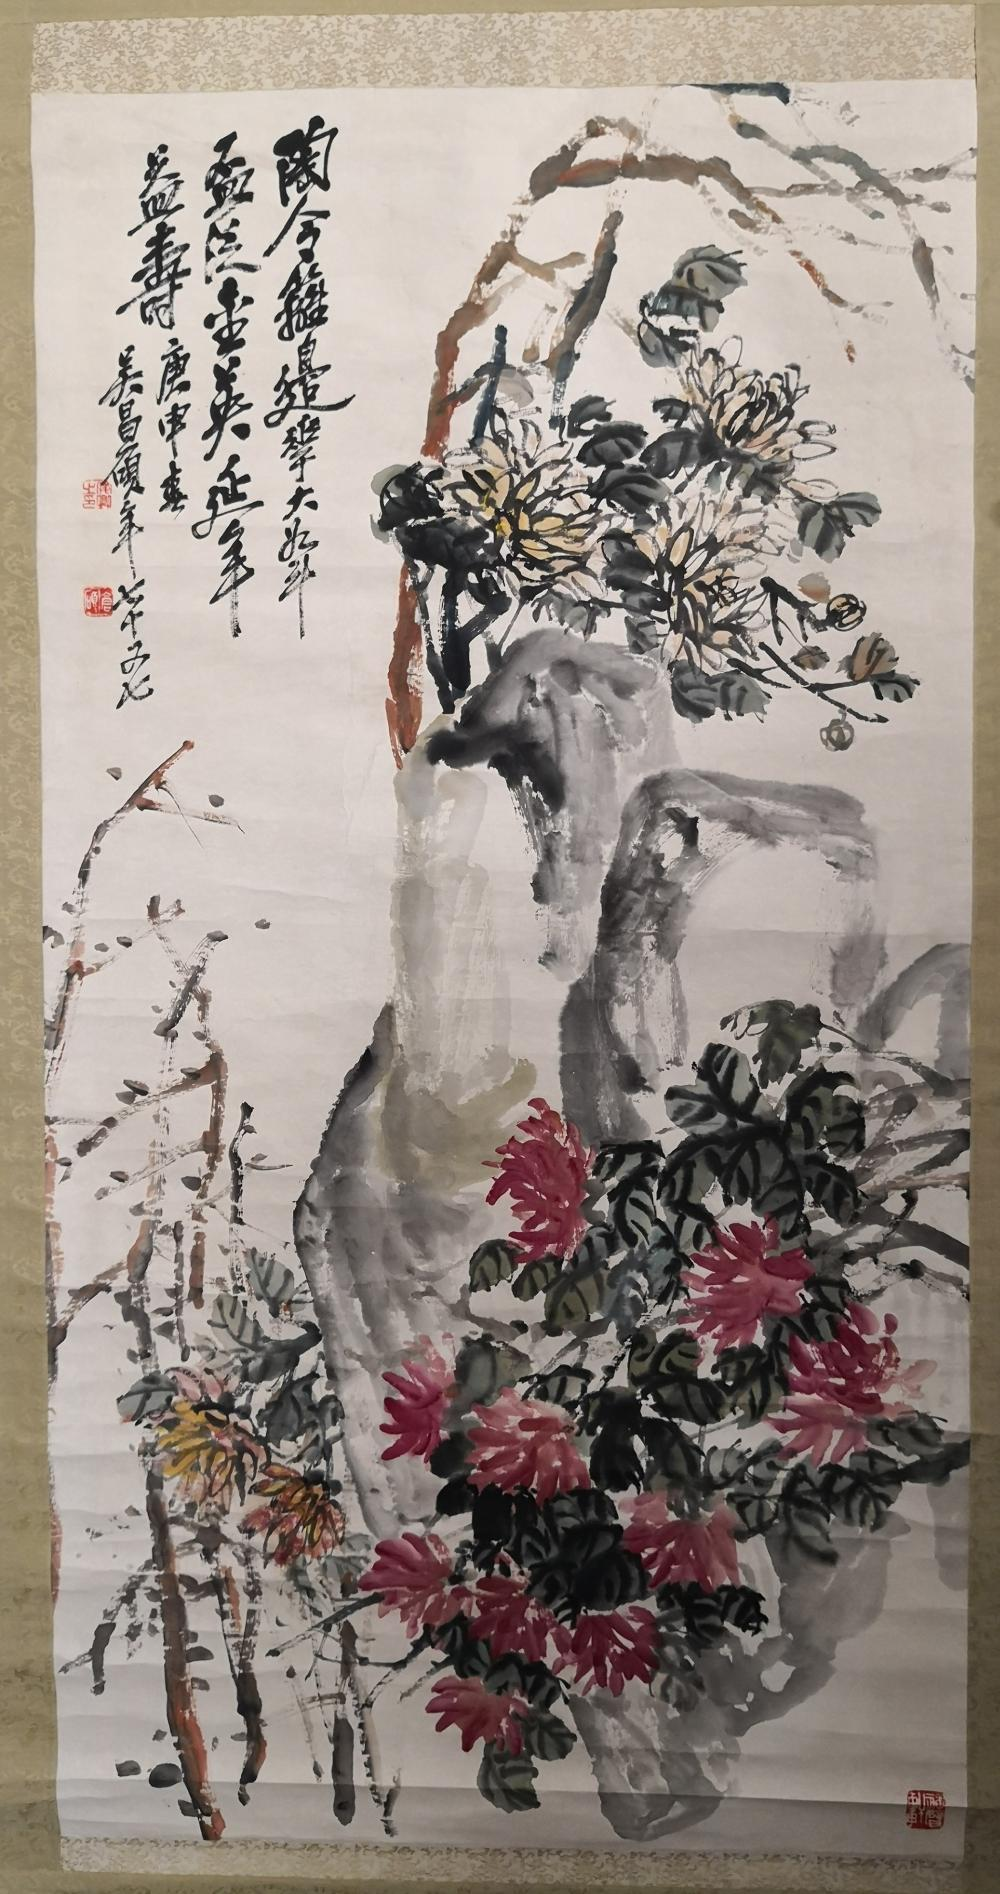 A CHINESE PAINTING BY WU CHANGSUO